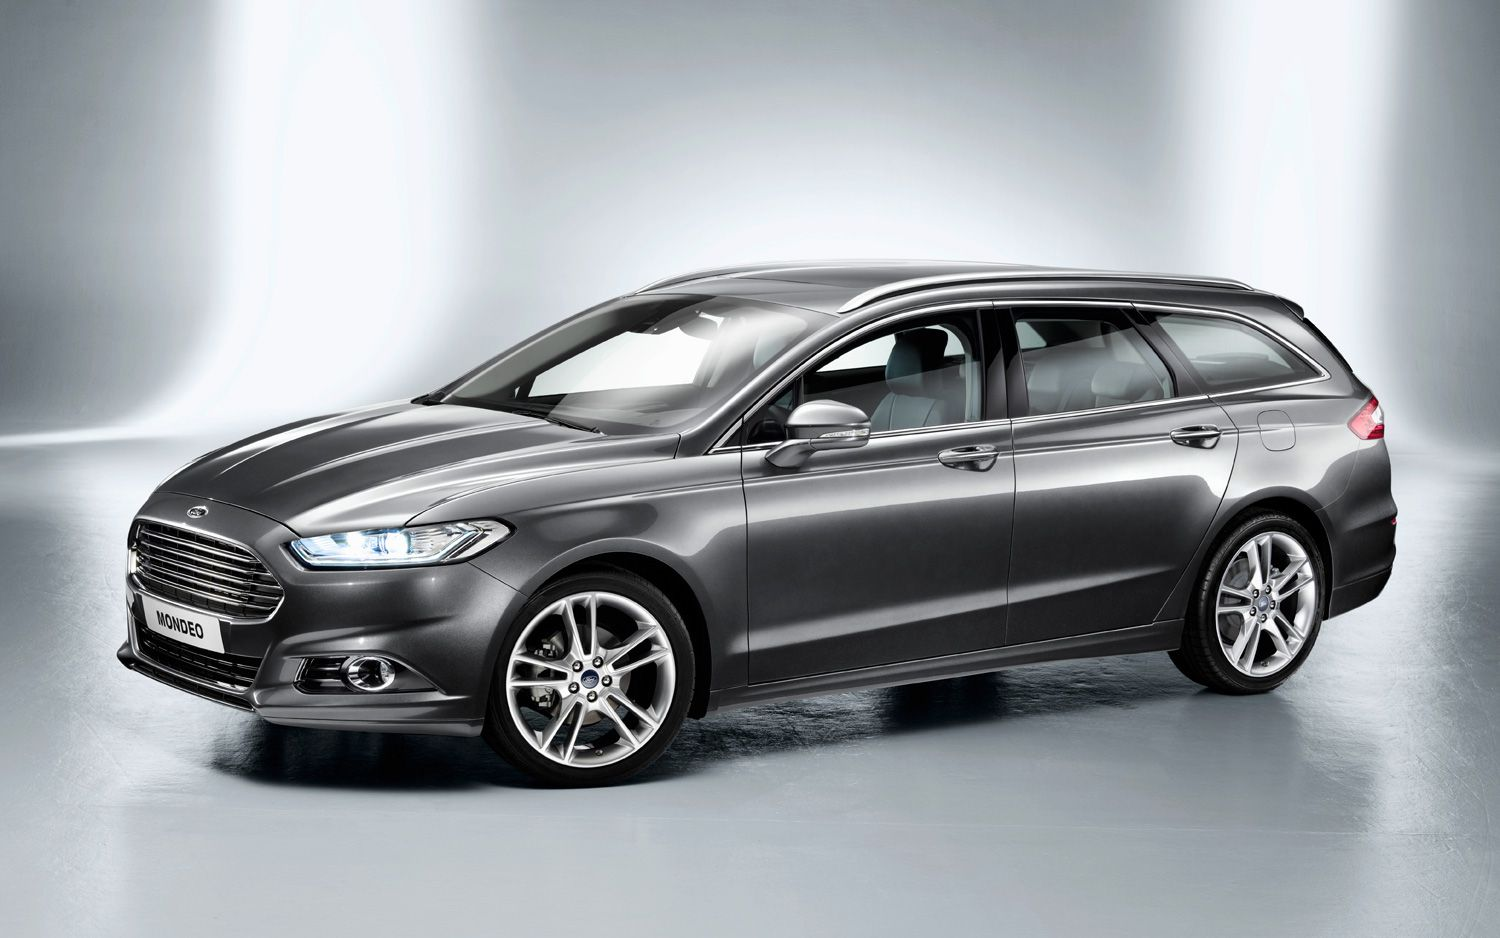 Fusion Based Ford Mondeo Hatchback And Wagon Debut In Europe